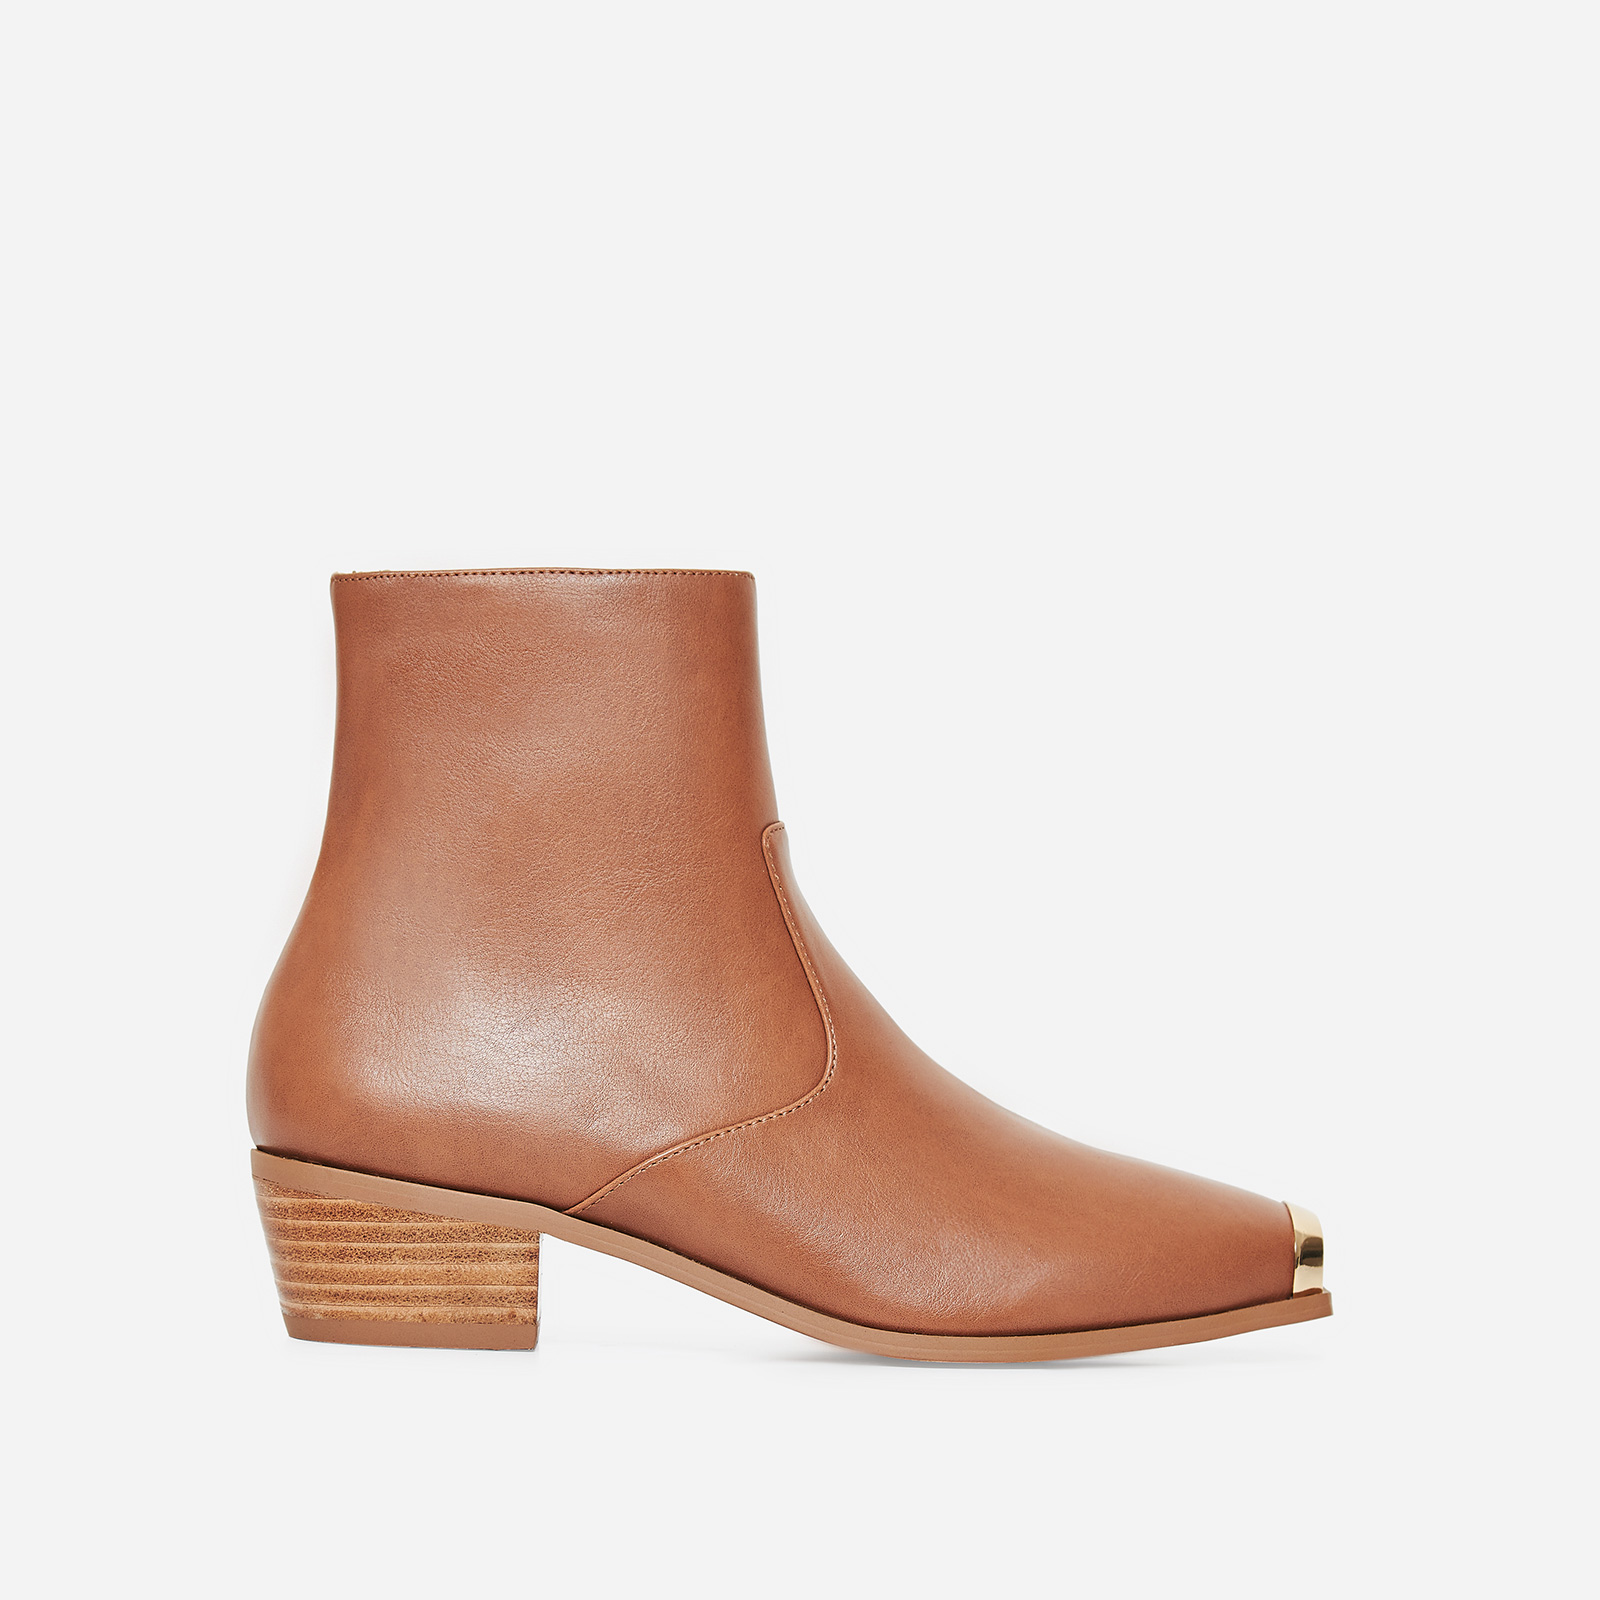 Tris Toe Cap Western Ankle Boot In Tan Faux Leather